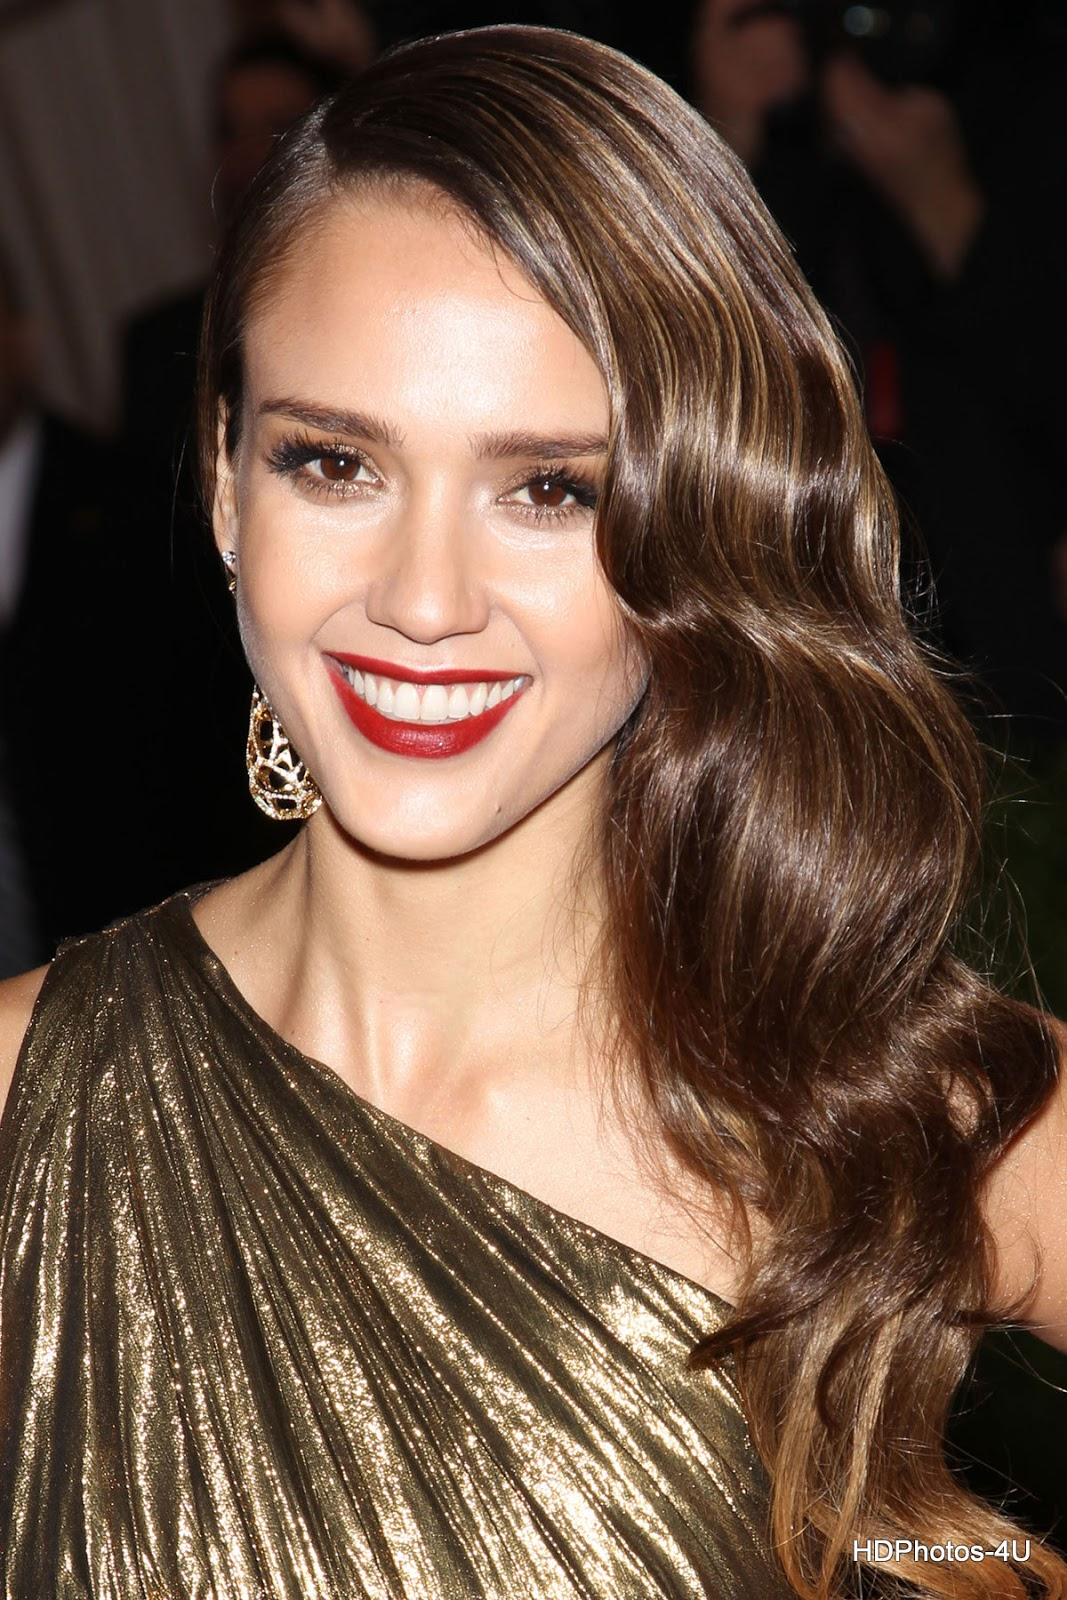 Full HQ Photos of Jessica Alba at Metropolitan Museum of Art's Costume Gala 2012 in New York